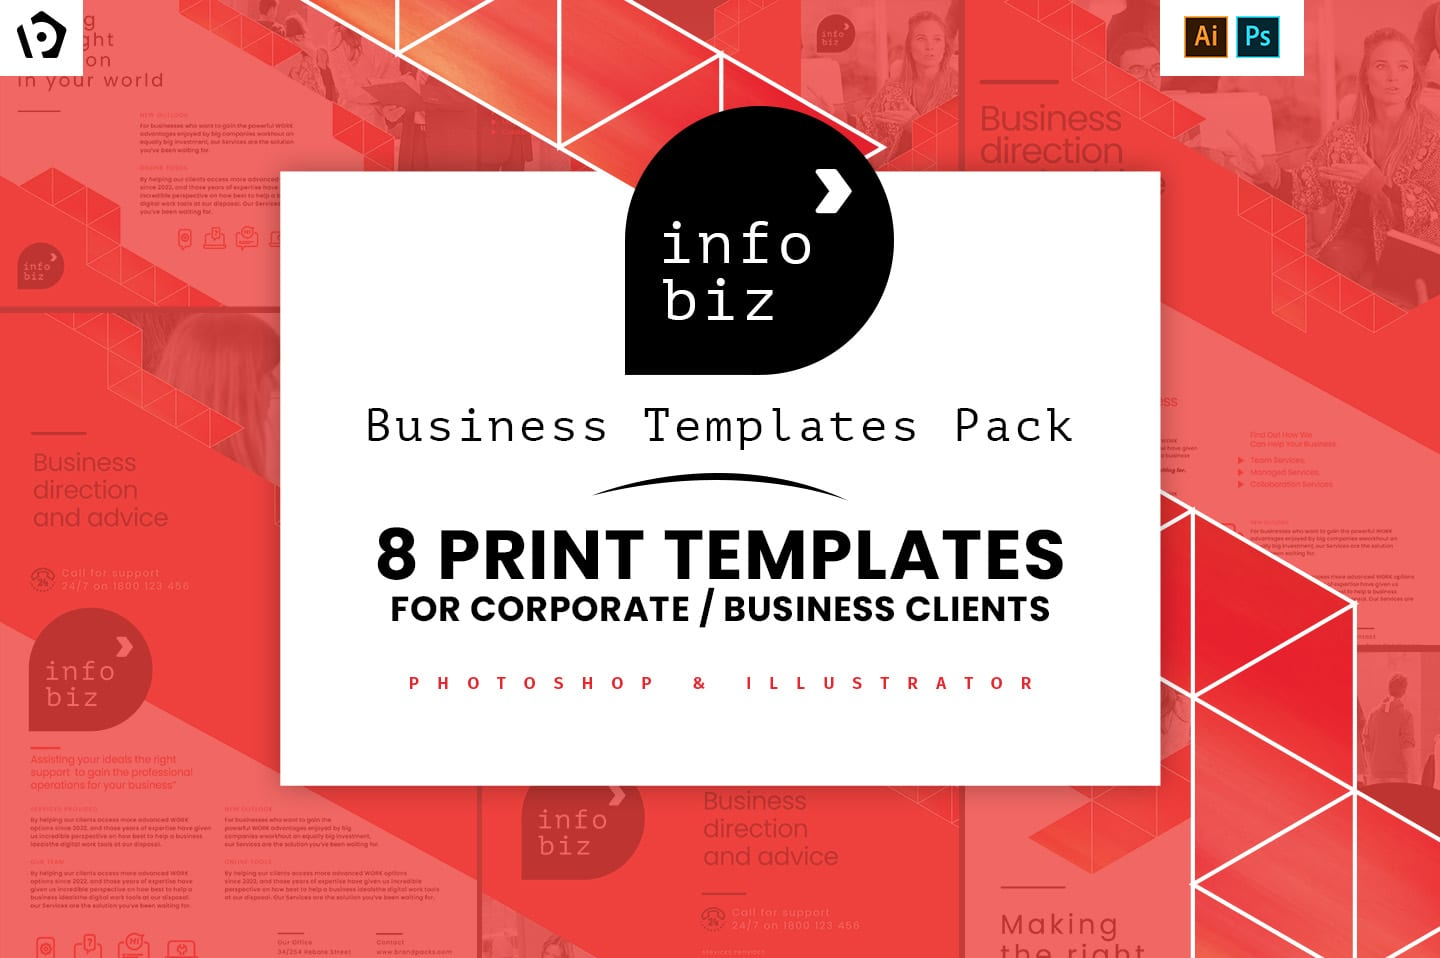 Business Templates Pack